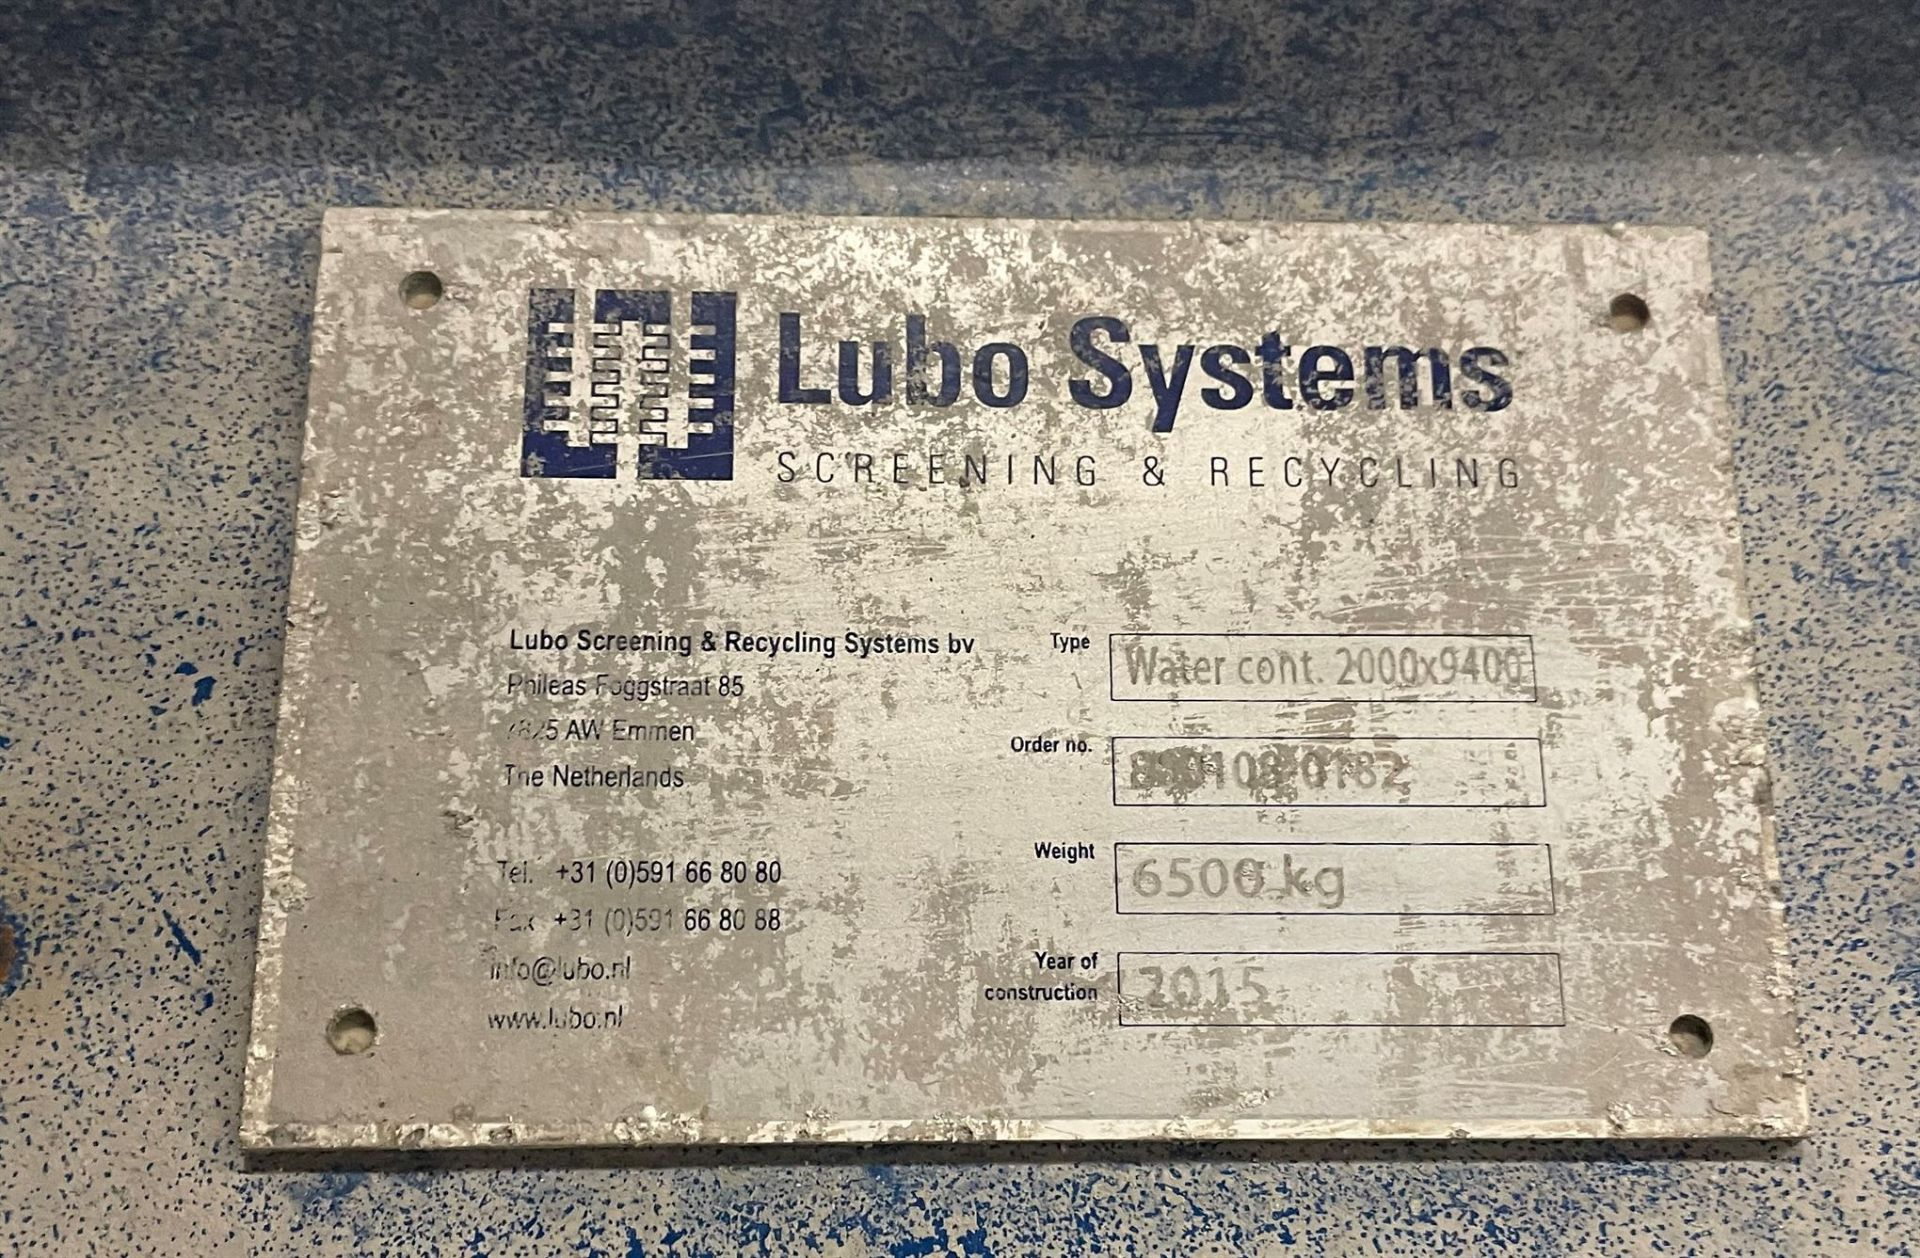 2015 LUBO SYSTEMS WATER CONT. 2000x9400 Settling Tank, s/n 800108-0182, 20 m³ Waterbath Capacity [ - Image 5 of 5